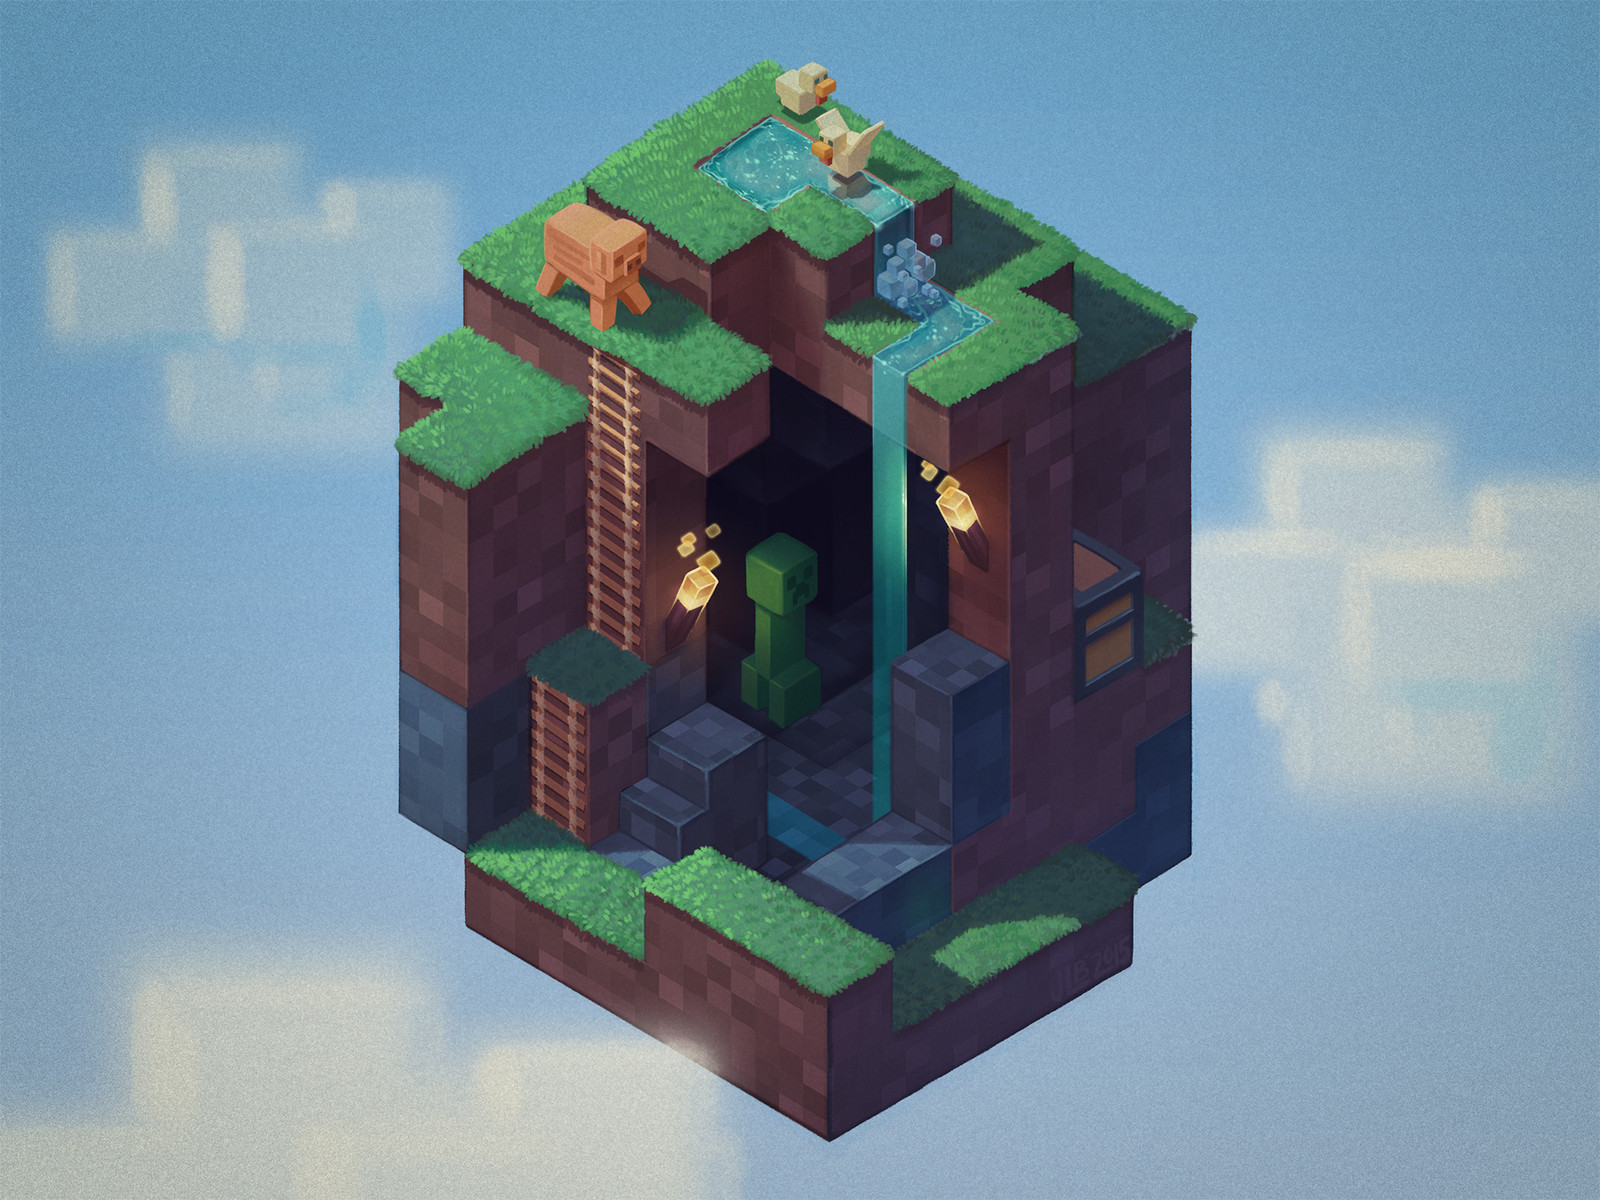 O as an isometric Minecraft world